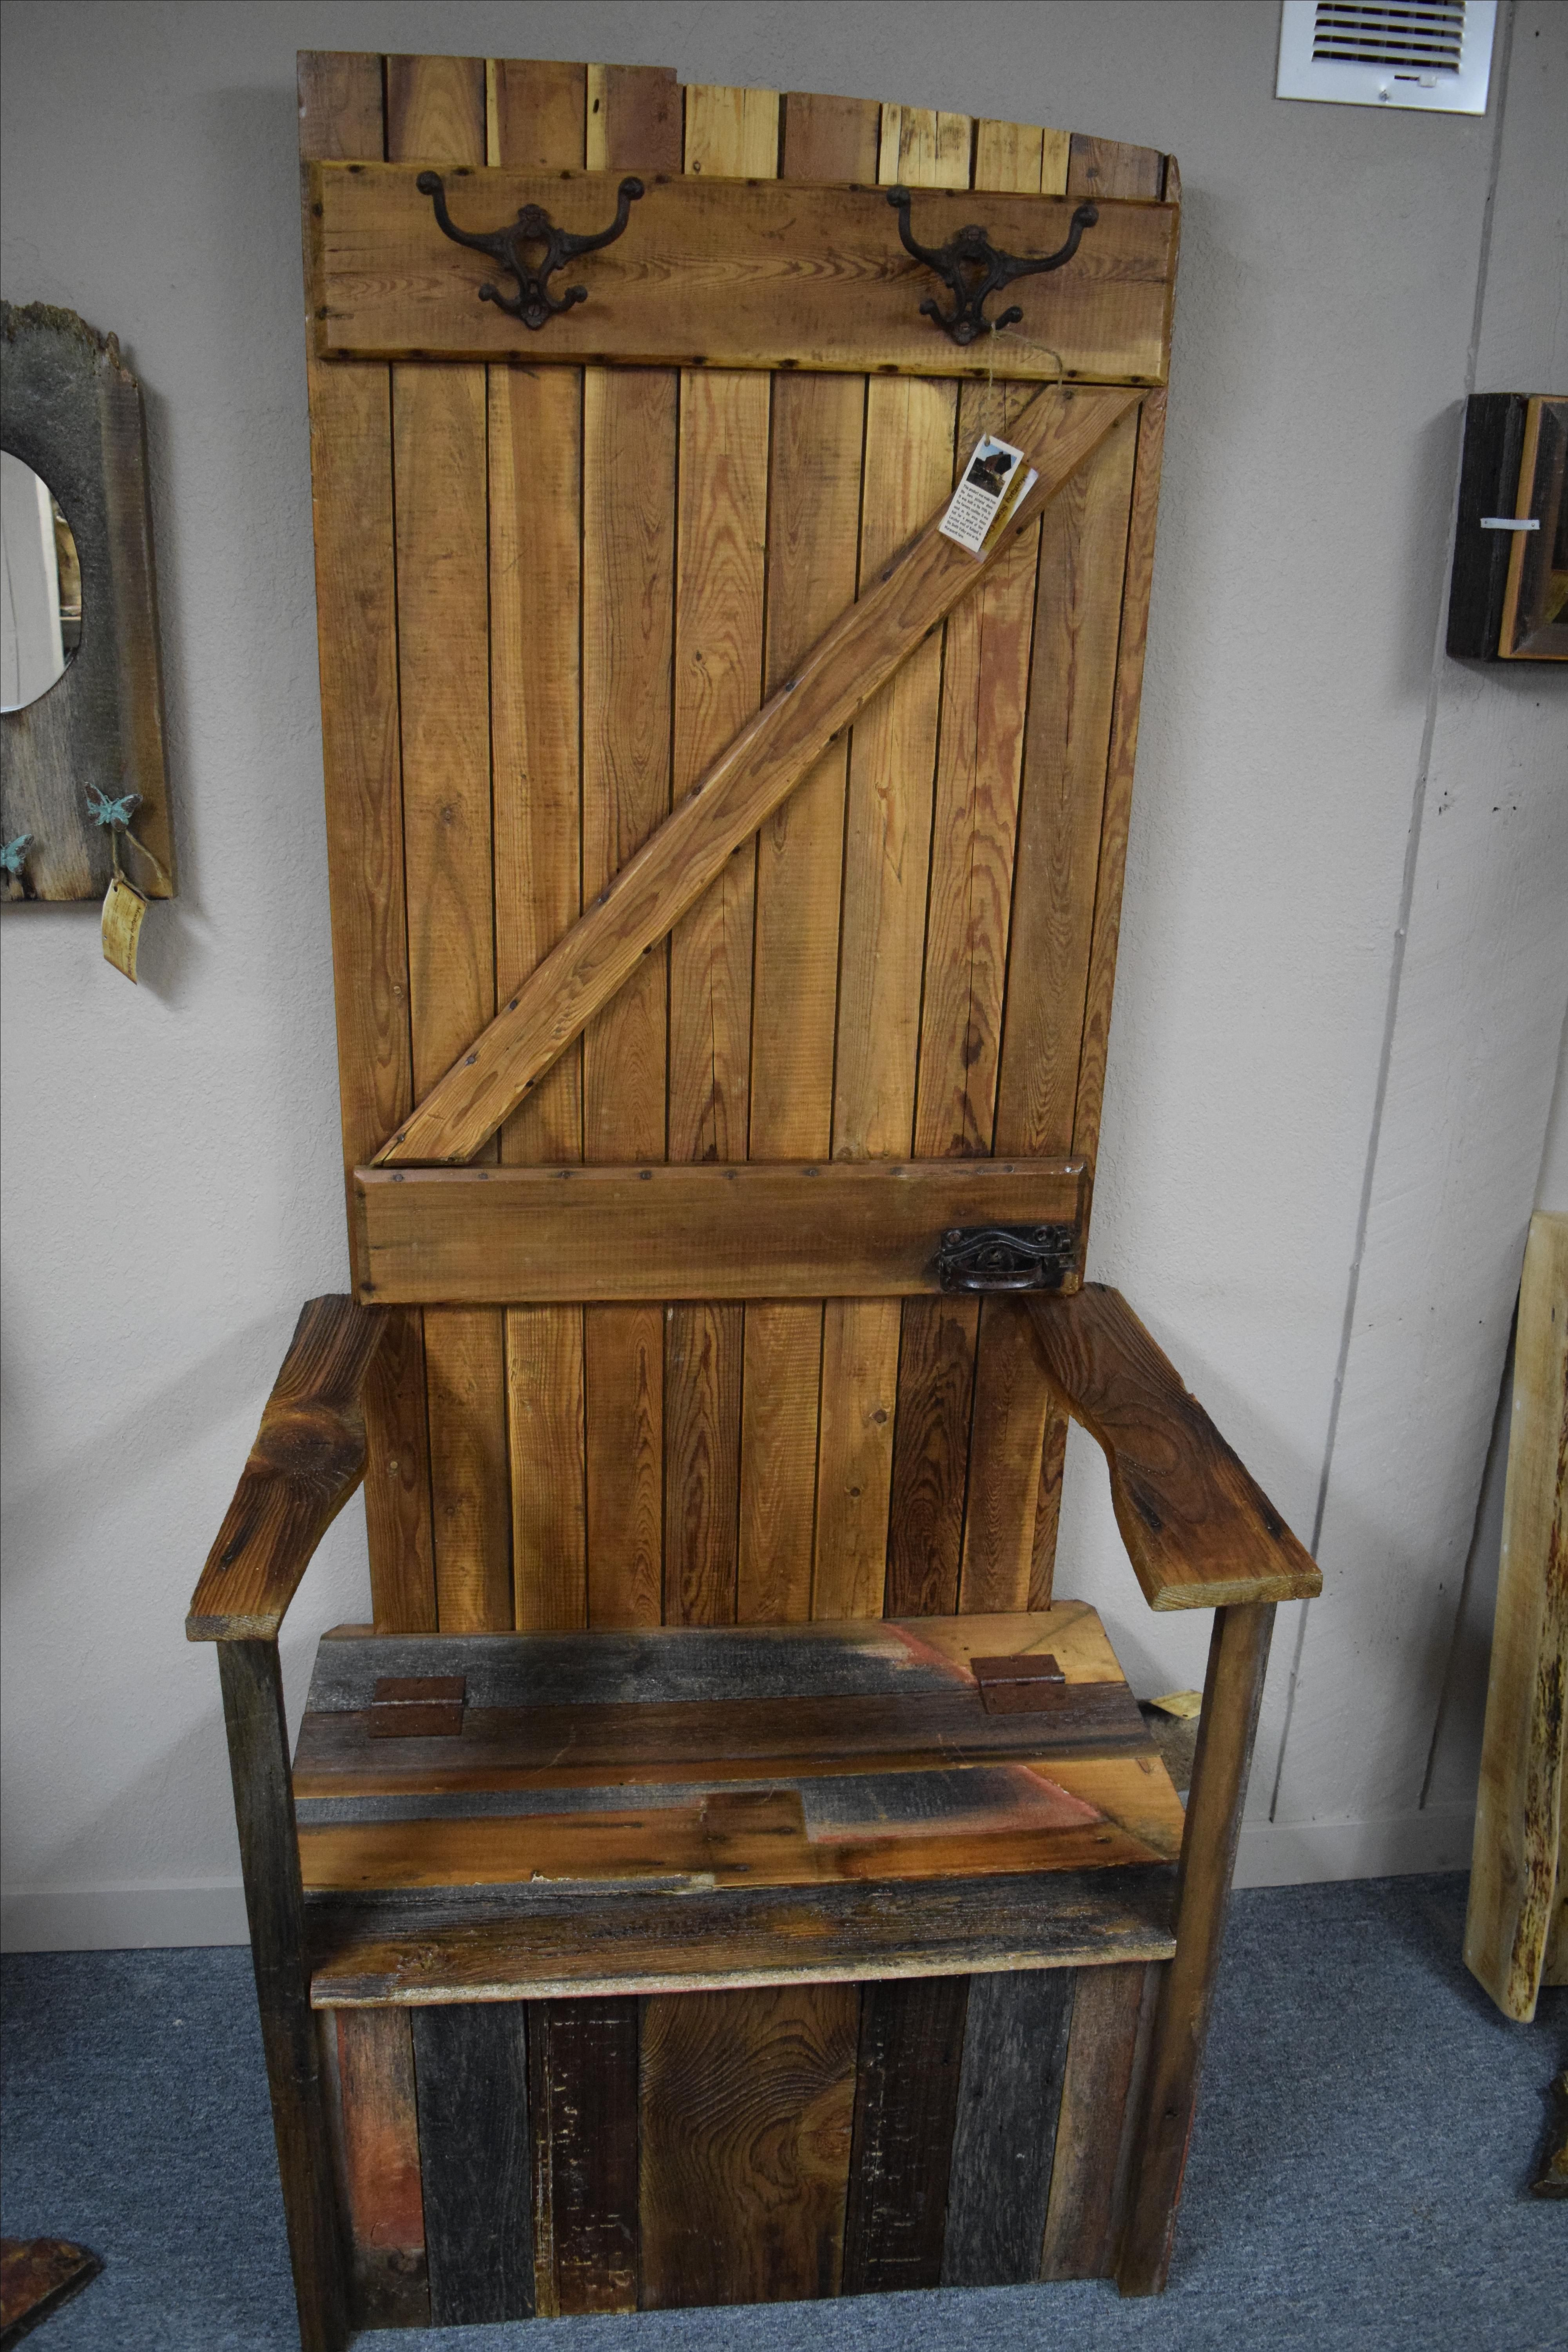 Buy Hand Made Barn Wood Hall Tree Made To Order From Montana Stone Carving Custommade Com